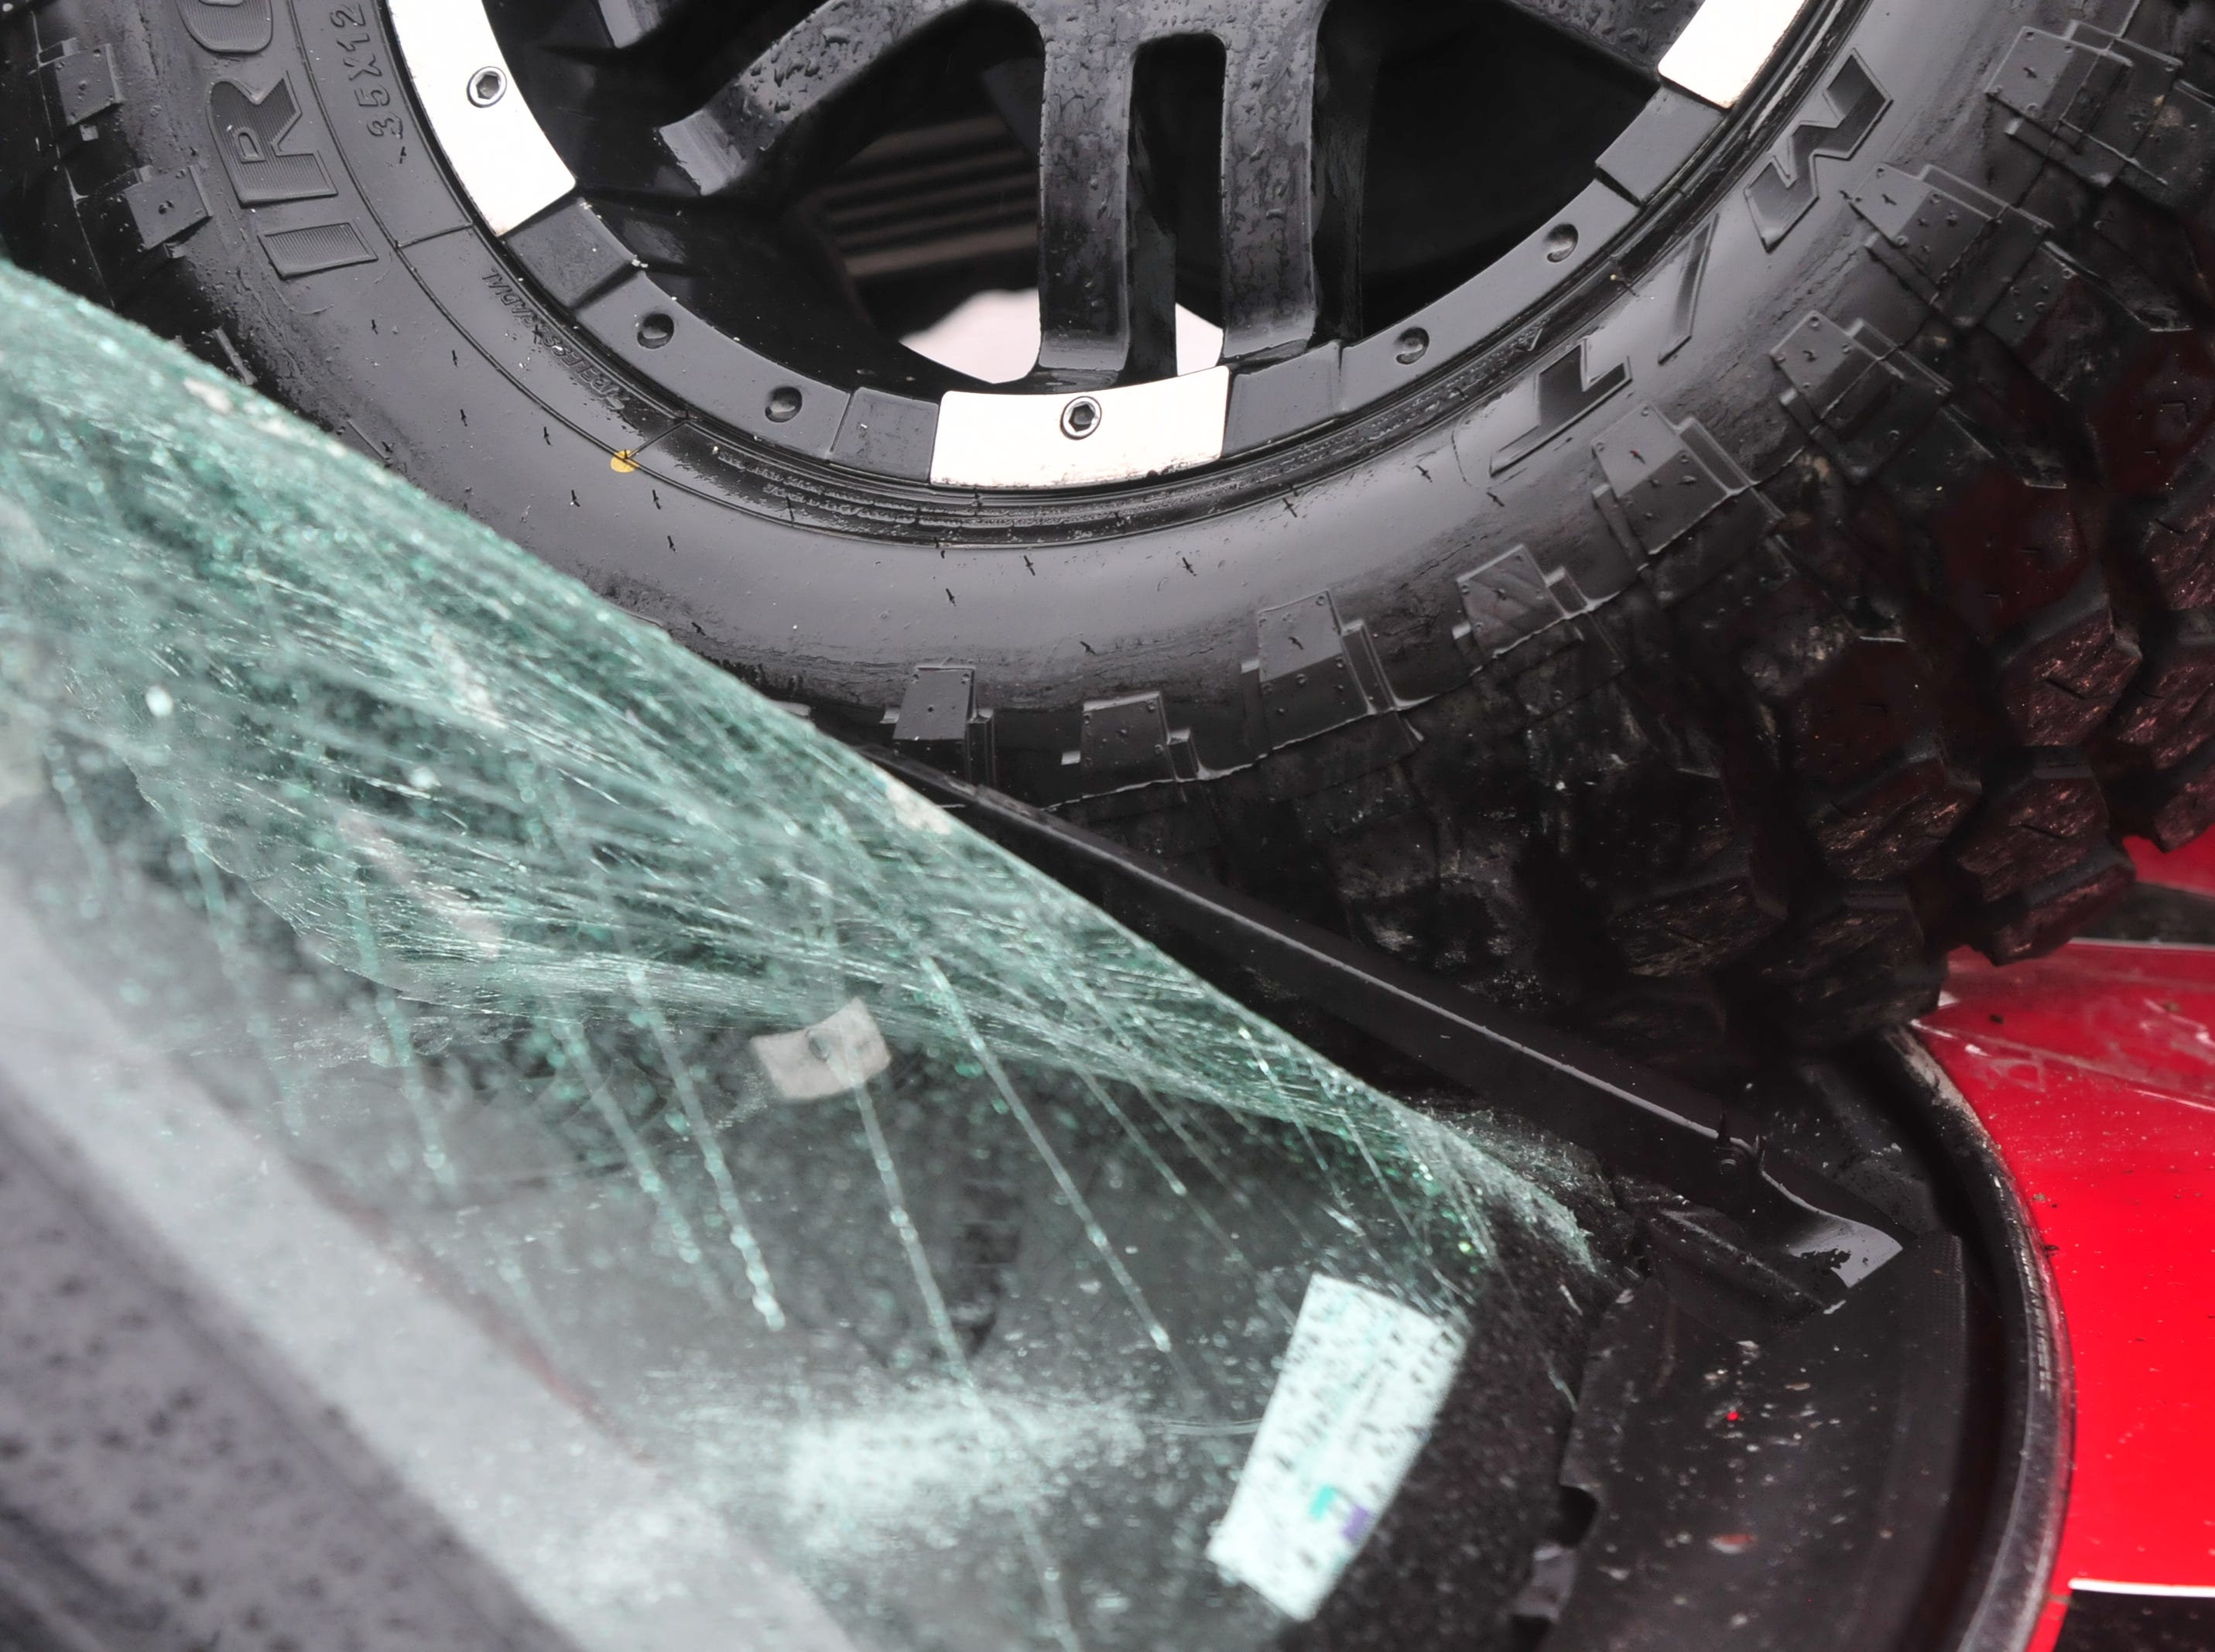 A pickup truck's tire smashed the windshield of a car Thursday during a three-vehicle accident on Indiana 121 at Hayes Arboretum Road.